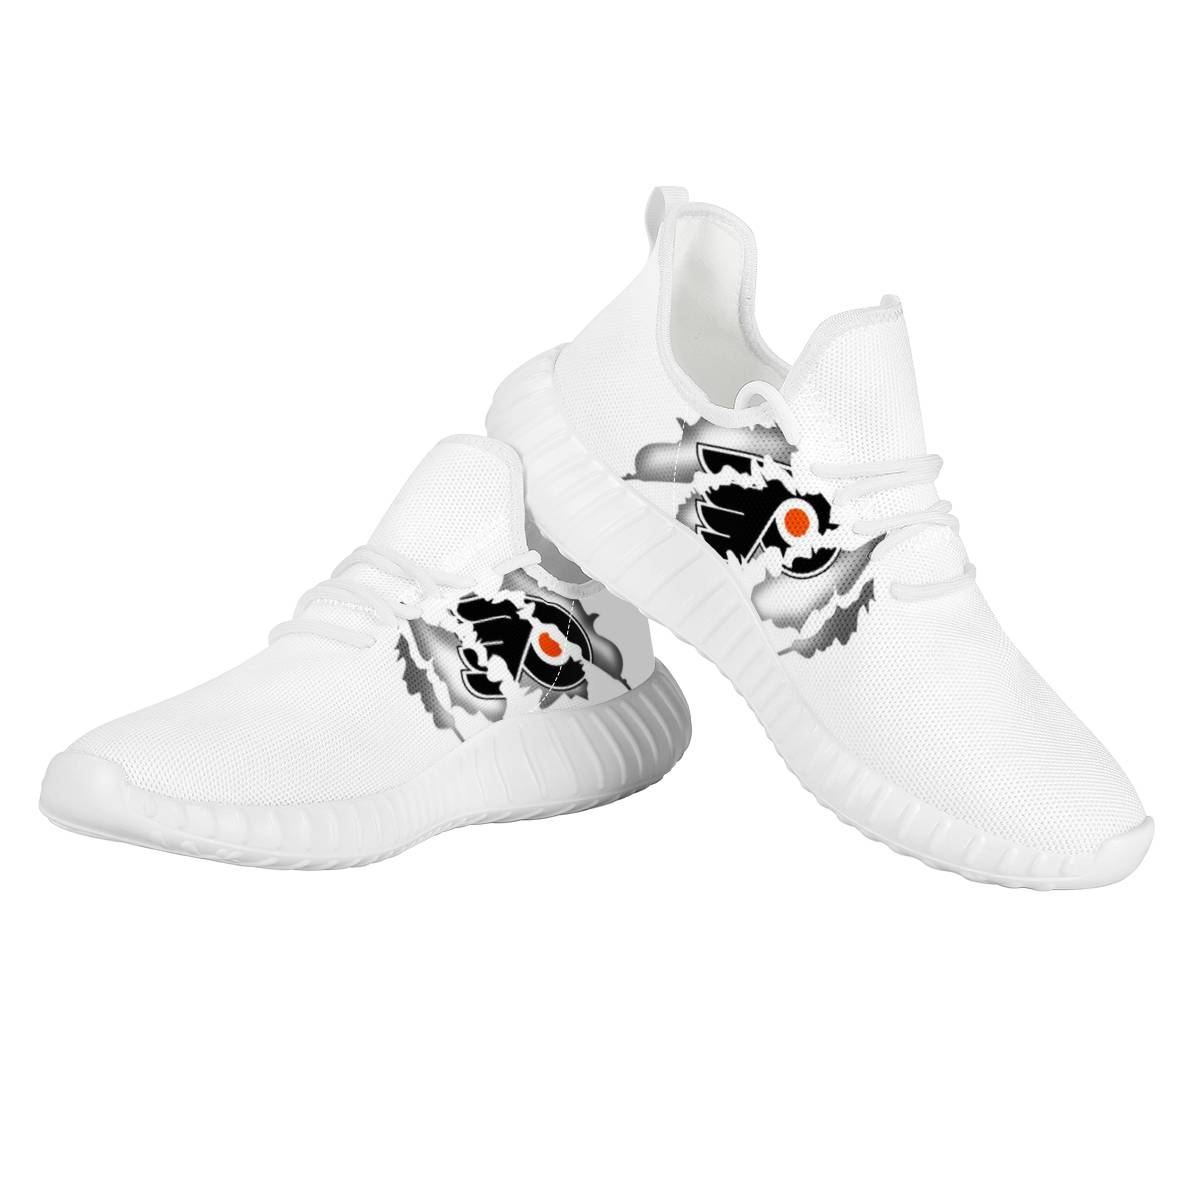 Women's NHL Philadelphia Flyers Mesh Knit Sneakers/Shoes 001